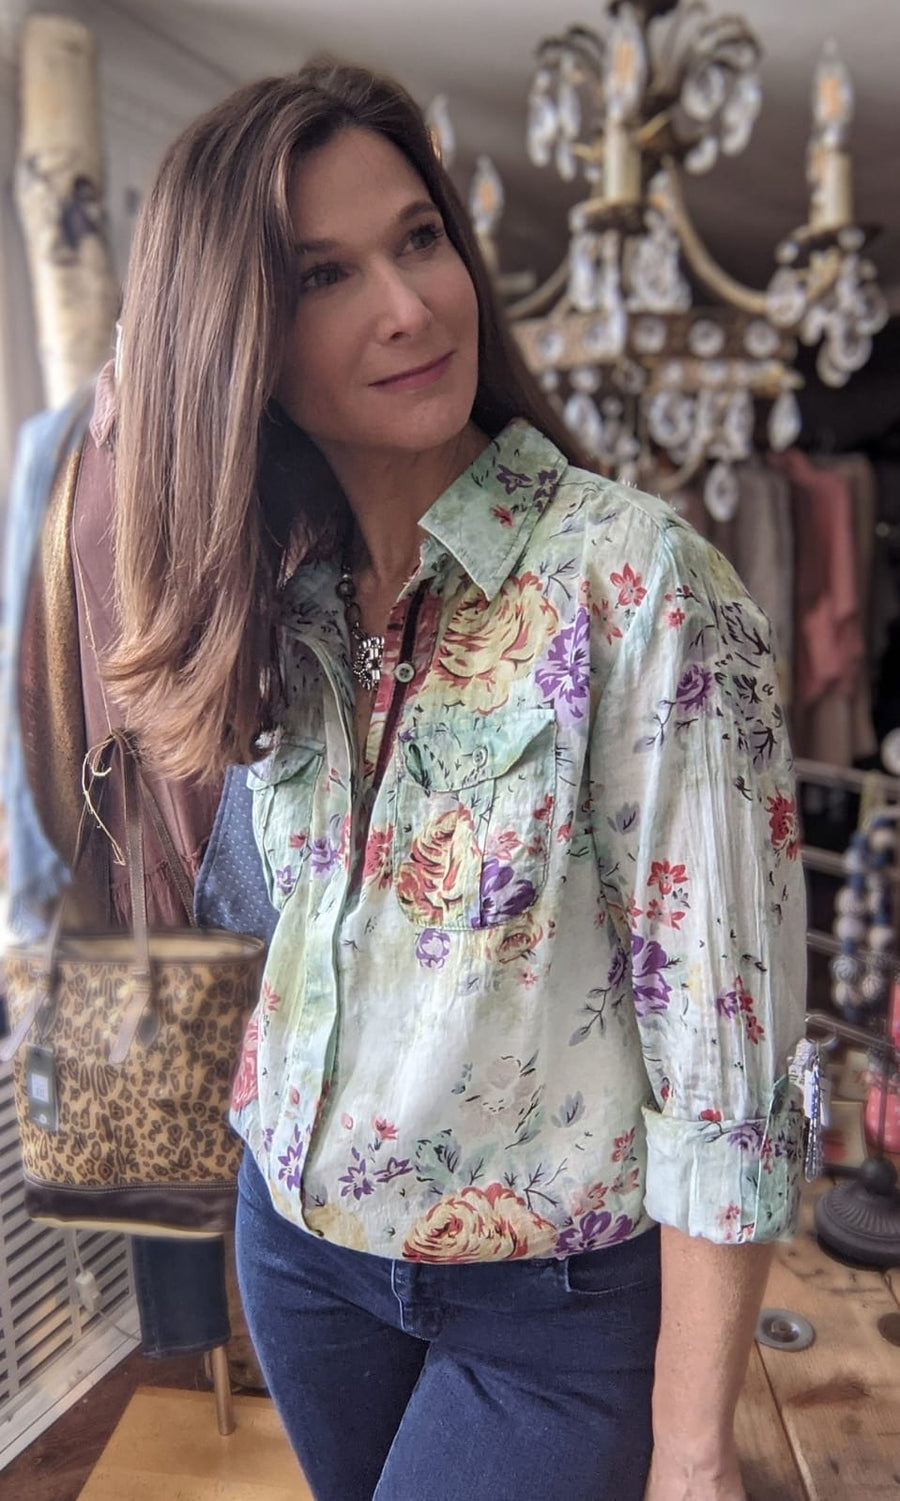 Floral Printed Button-Down Shirt with Vintage Wash